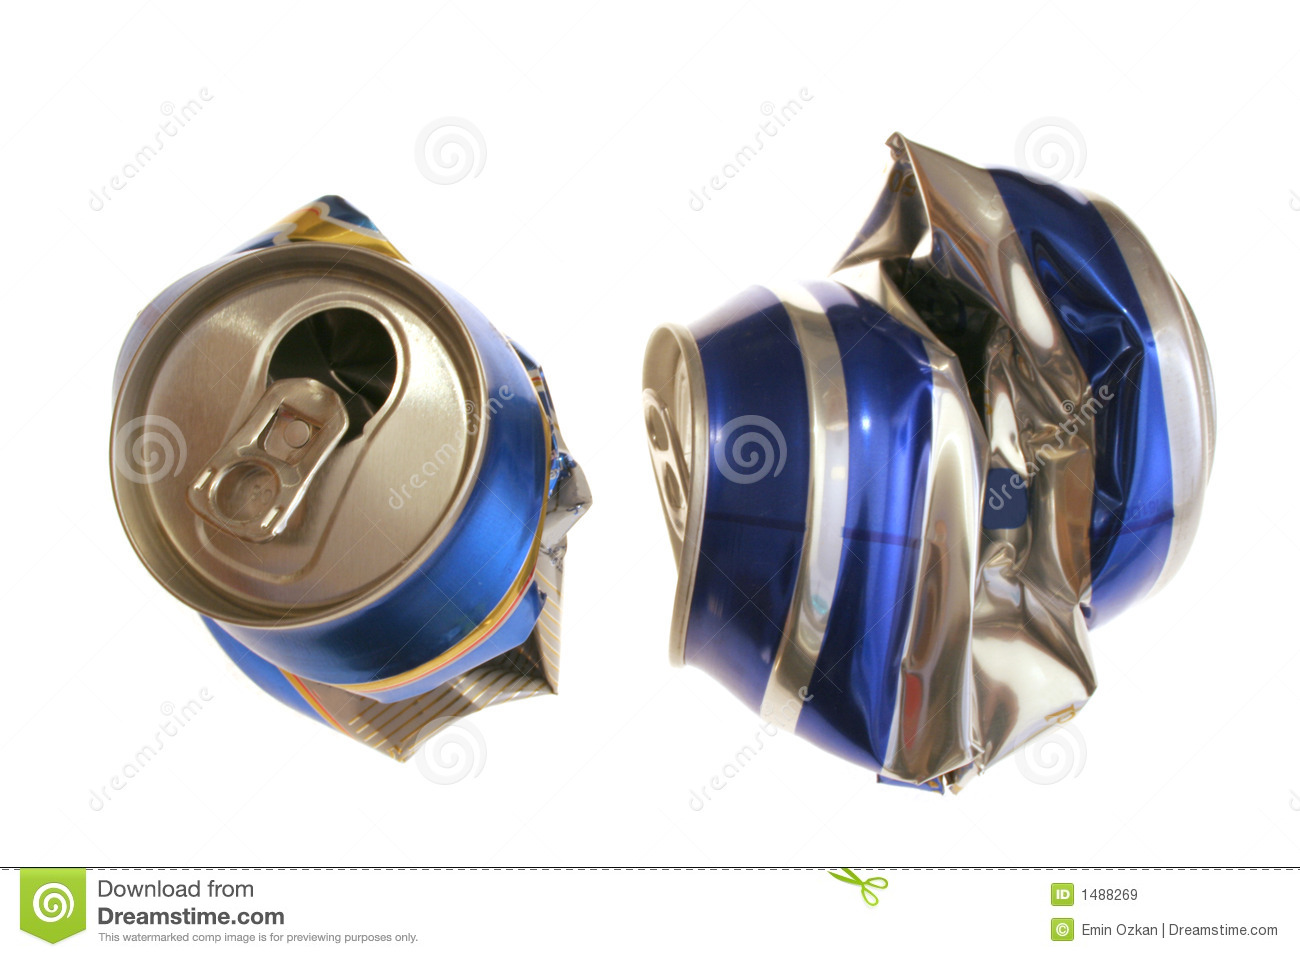 Crushed cans stock image. Image of beer, habit, drinking ...  Crushed Beer Can